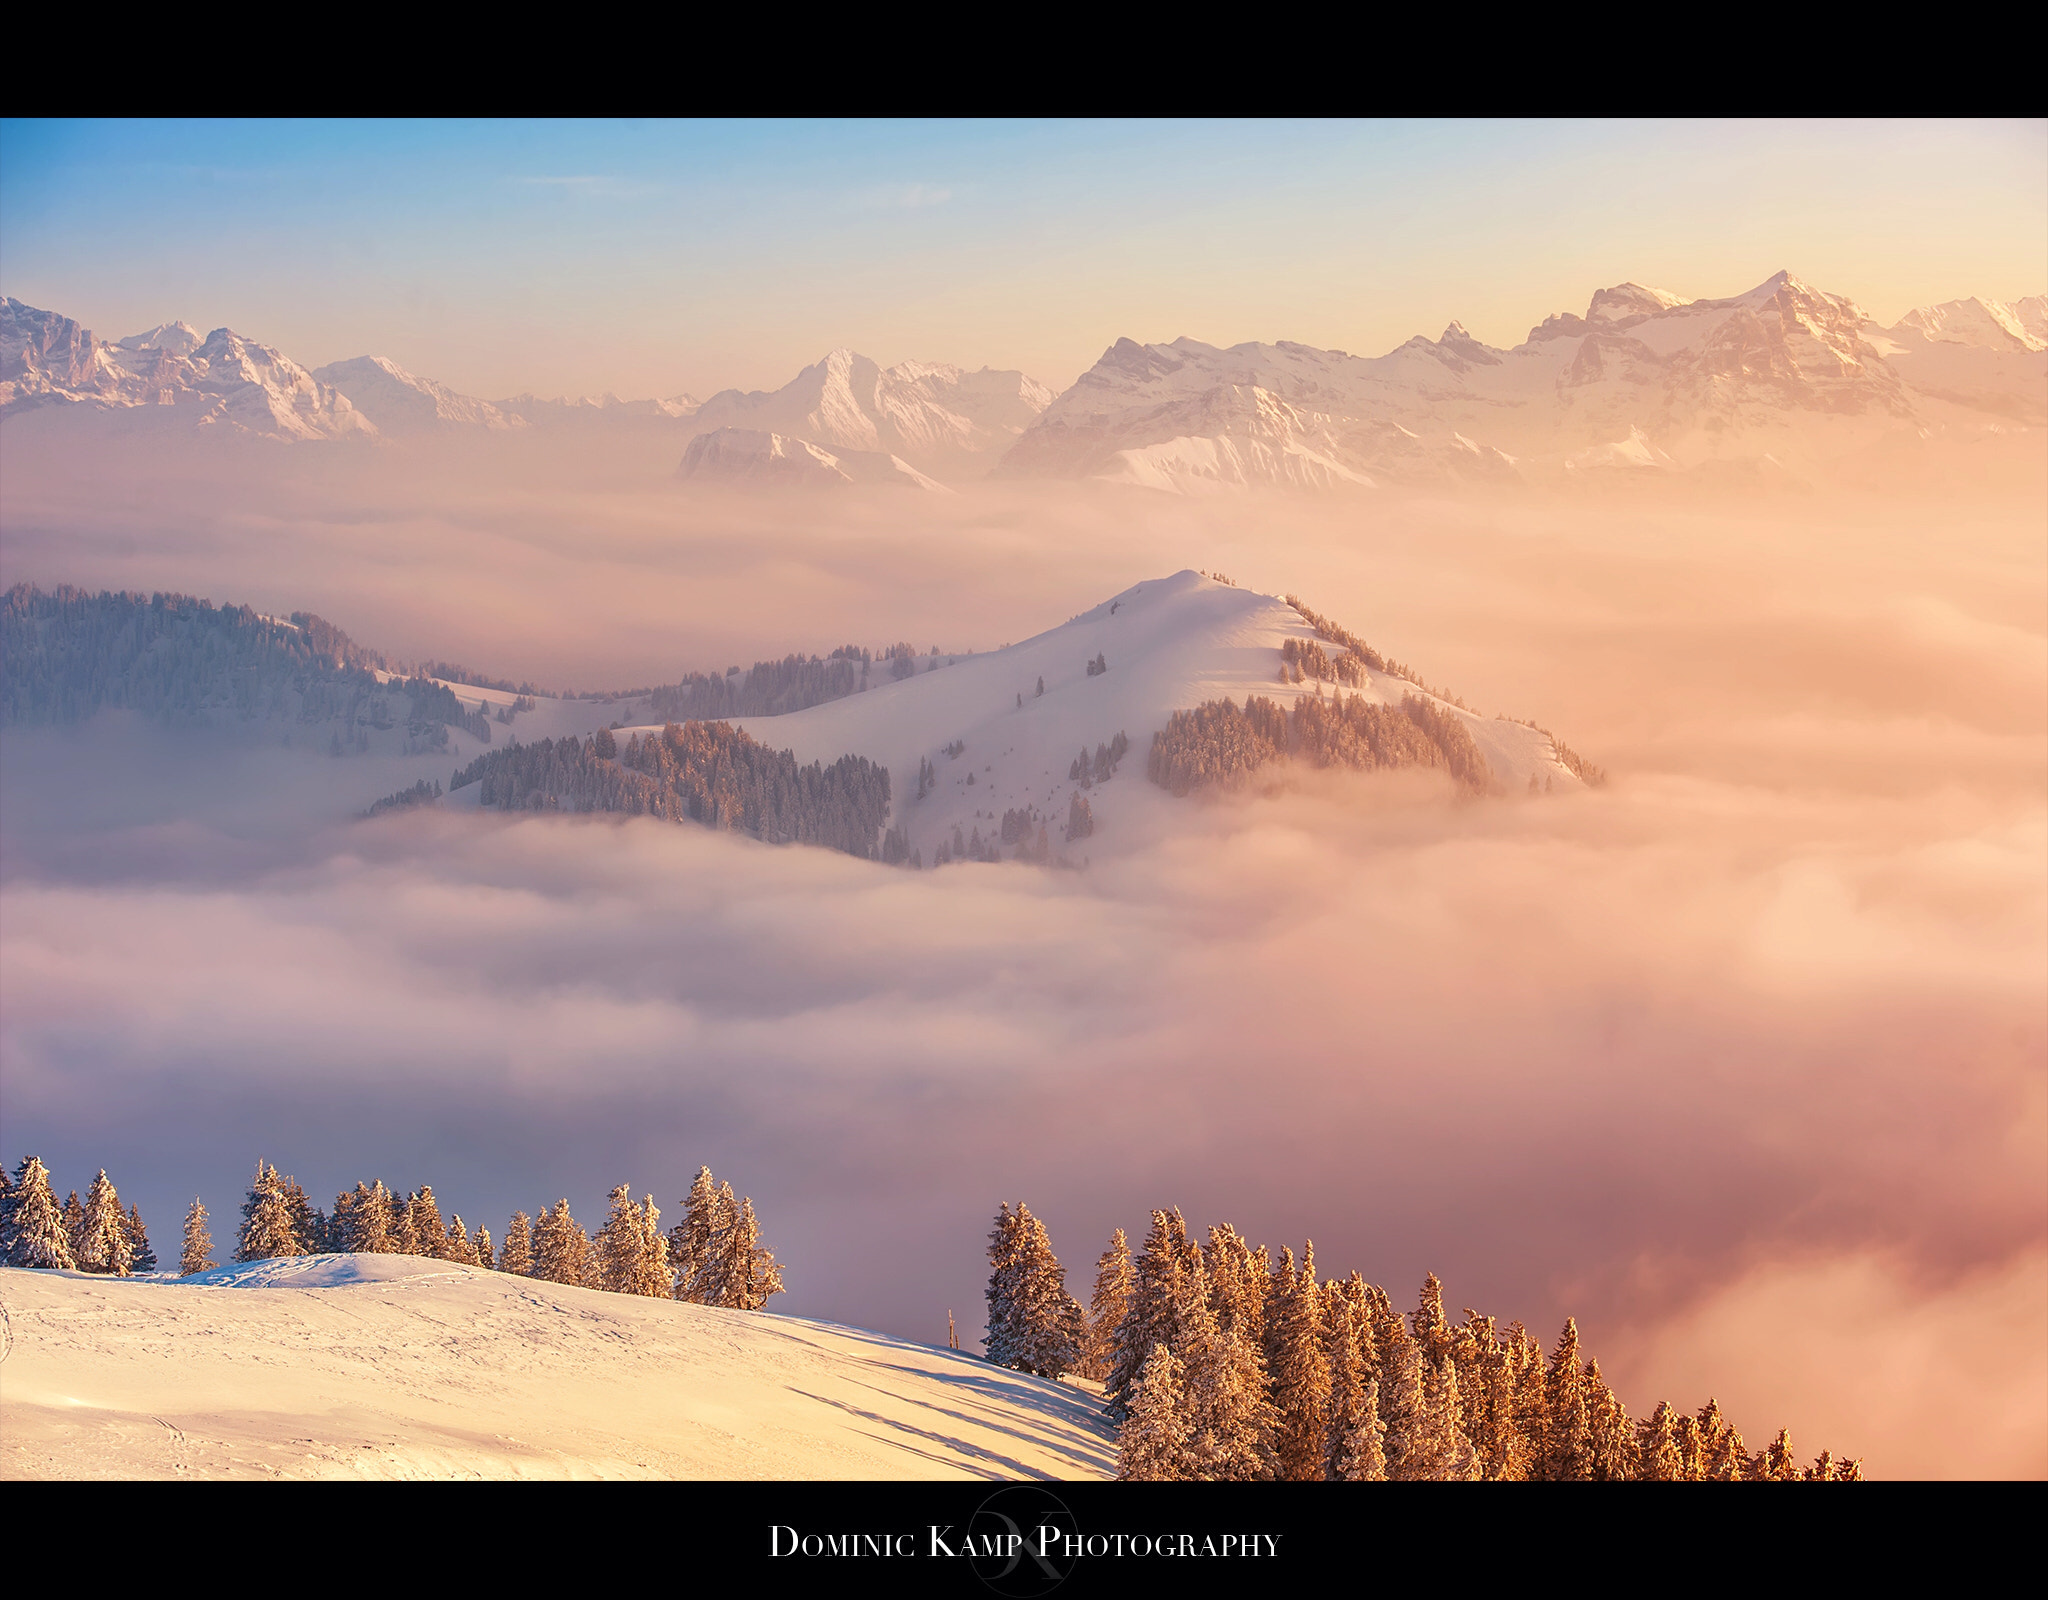 Photograph Sea of Clouds by Dominic Kamp on 500px